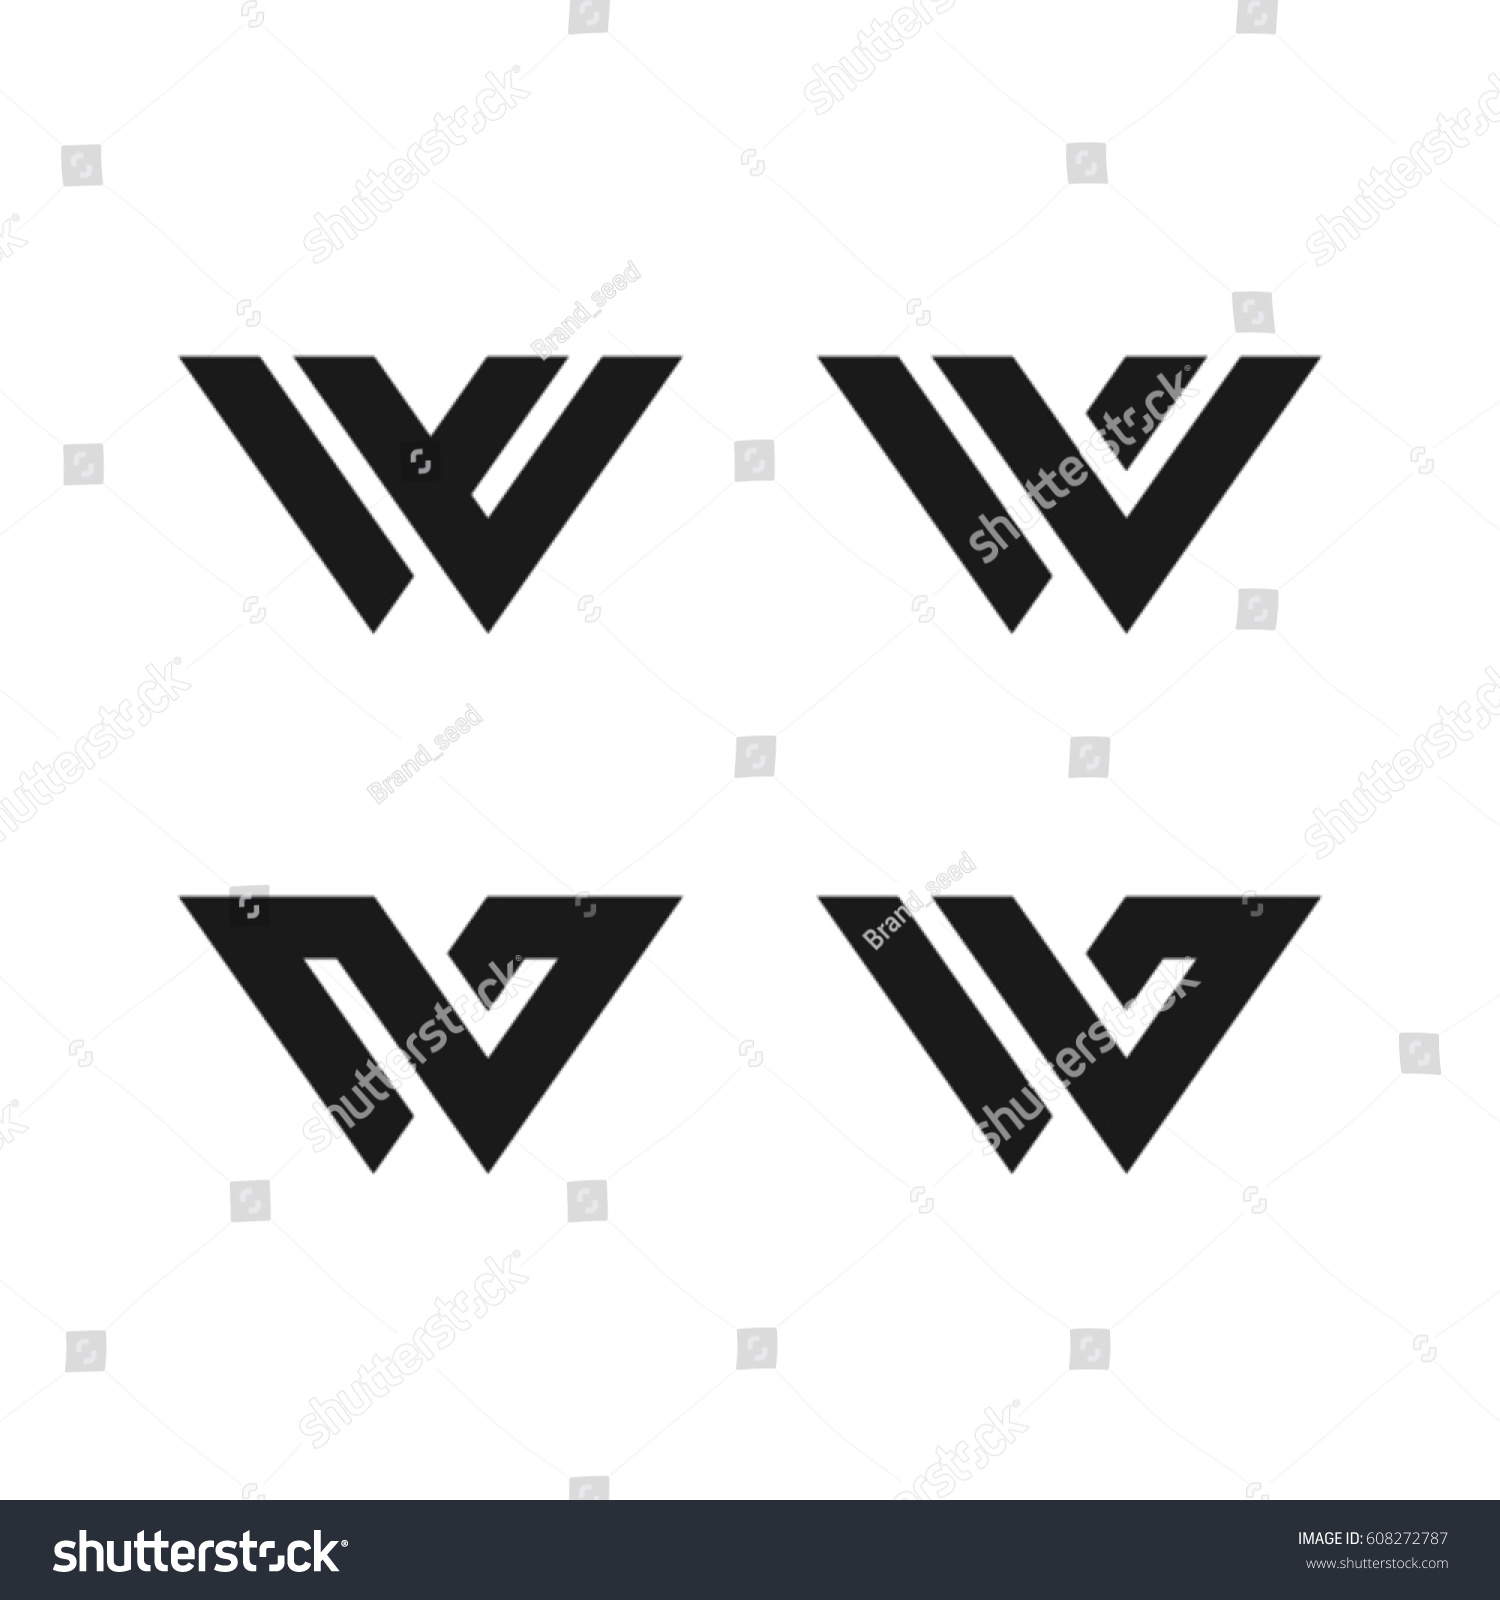 Royalty Free W Symbol W Letter Character Typeface W 608272787